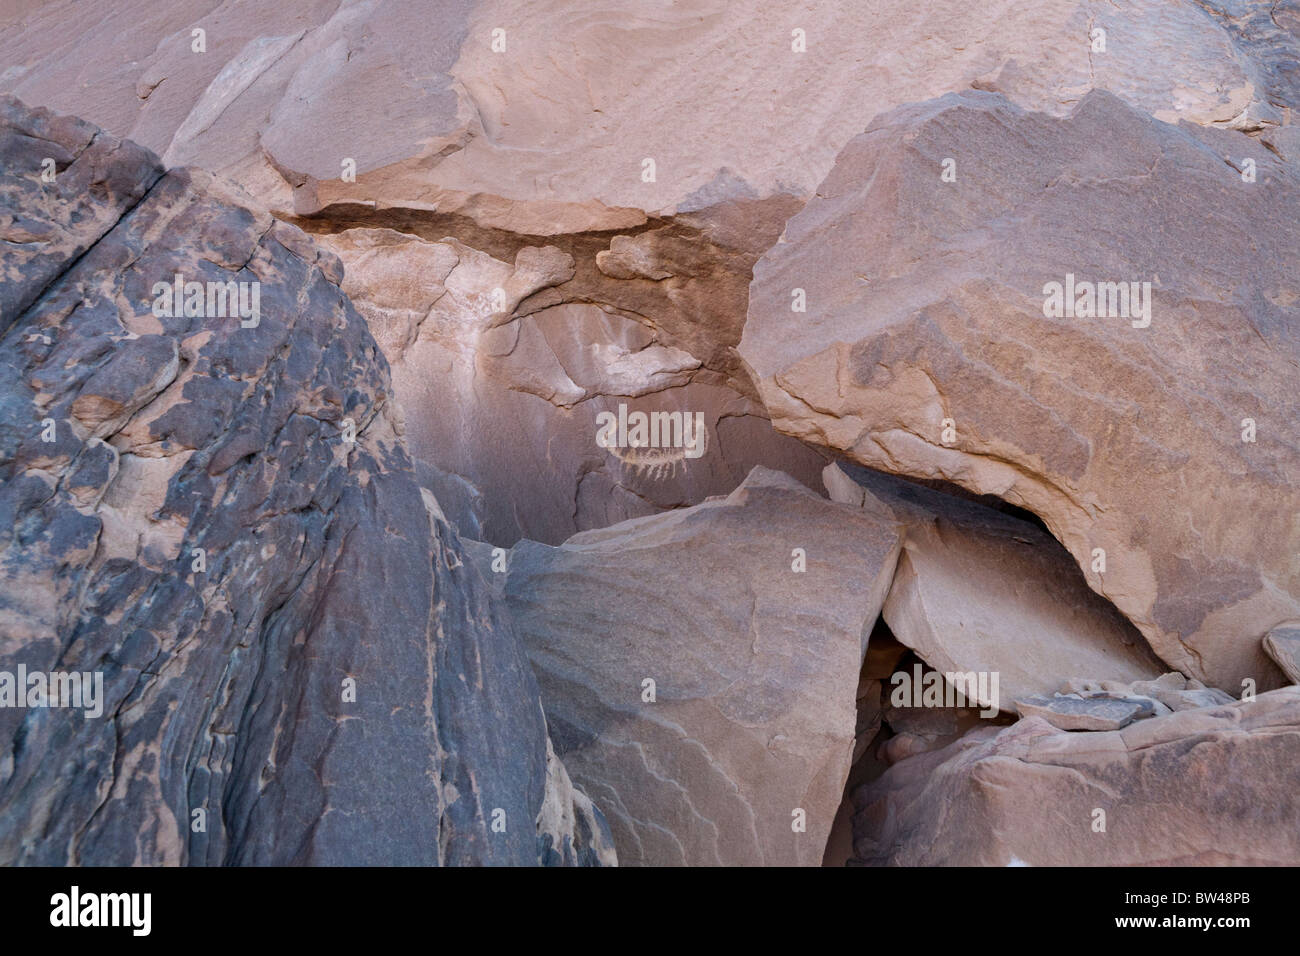 Depiction of a boat with crew - rock-art in the Eastern Desert of Egypt, North Africa - Stock Image